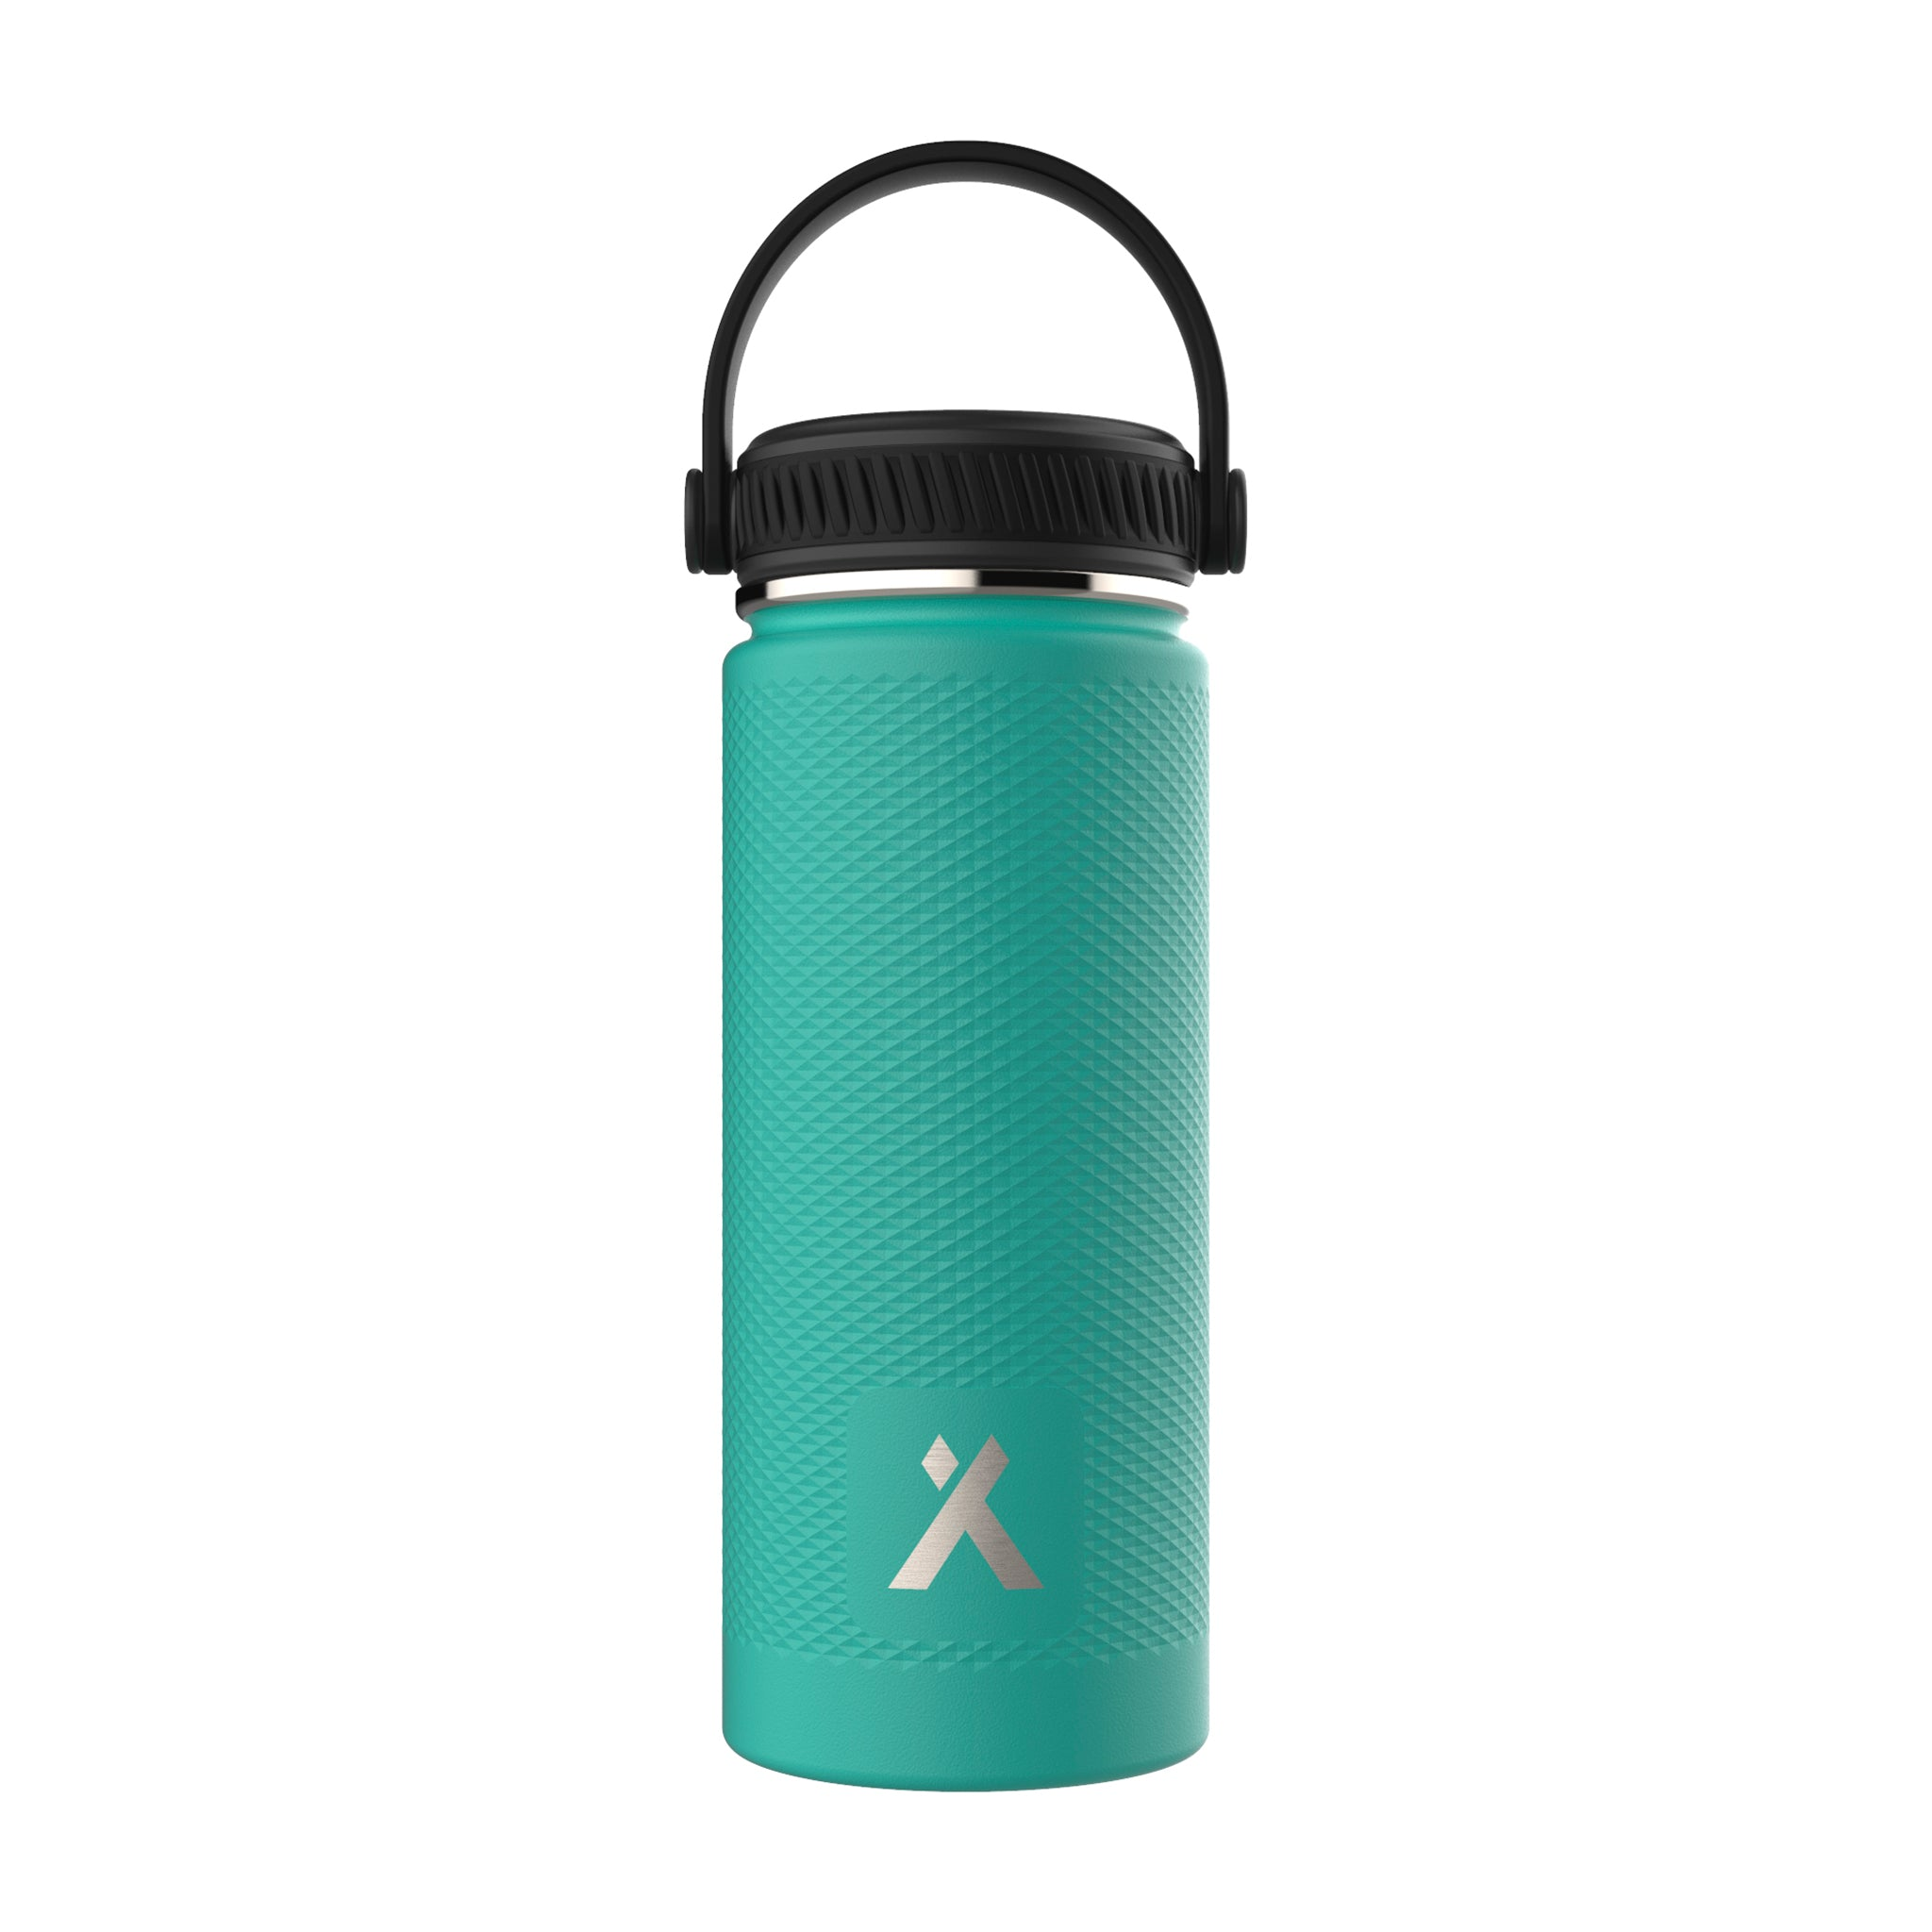 Aqua teal:Bear Grylls Insulated Water Bottle in Aqua Teal